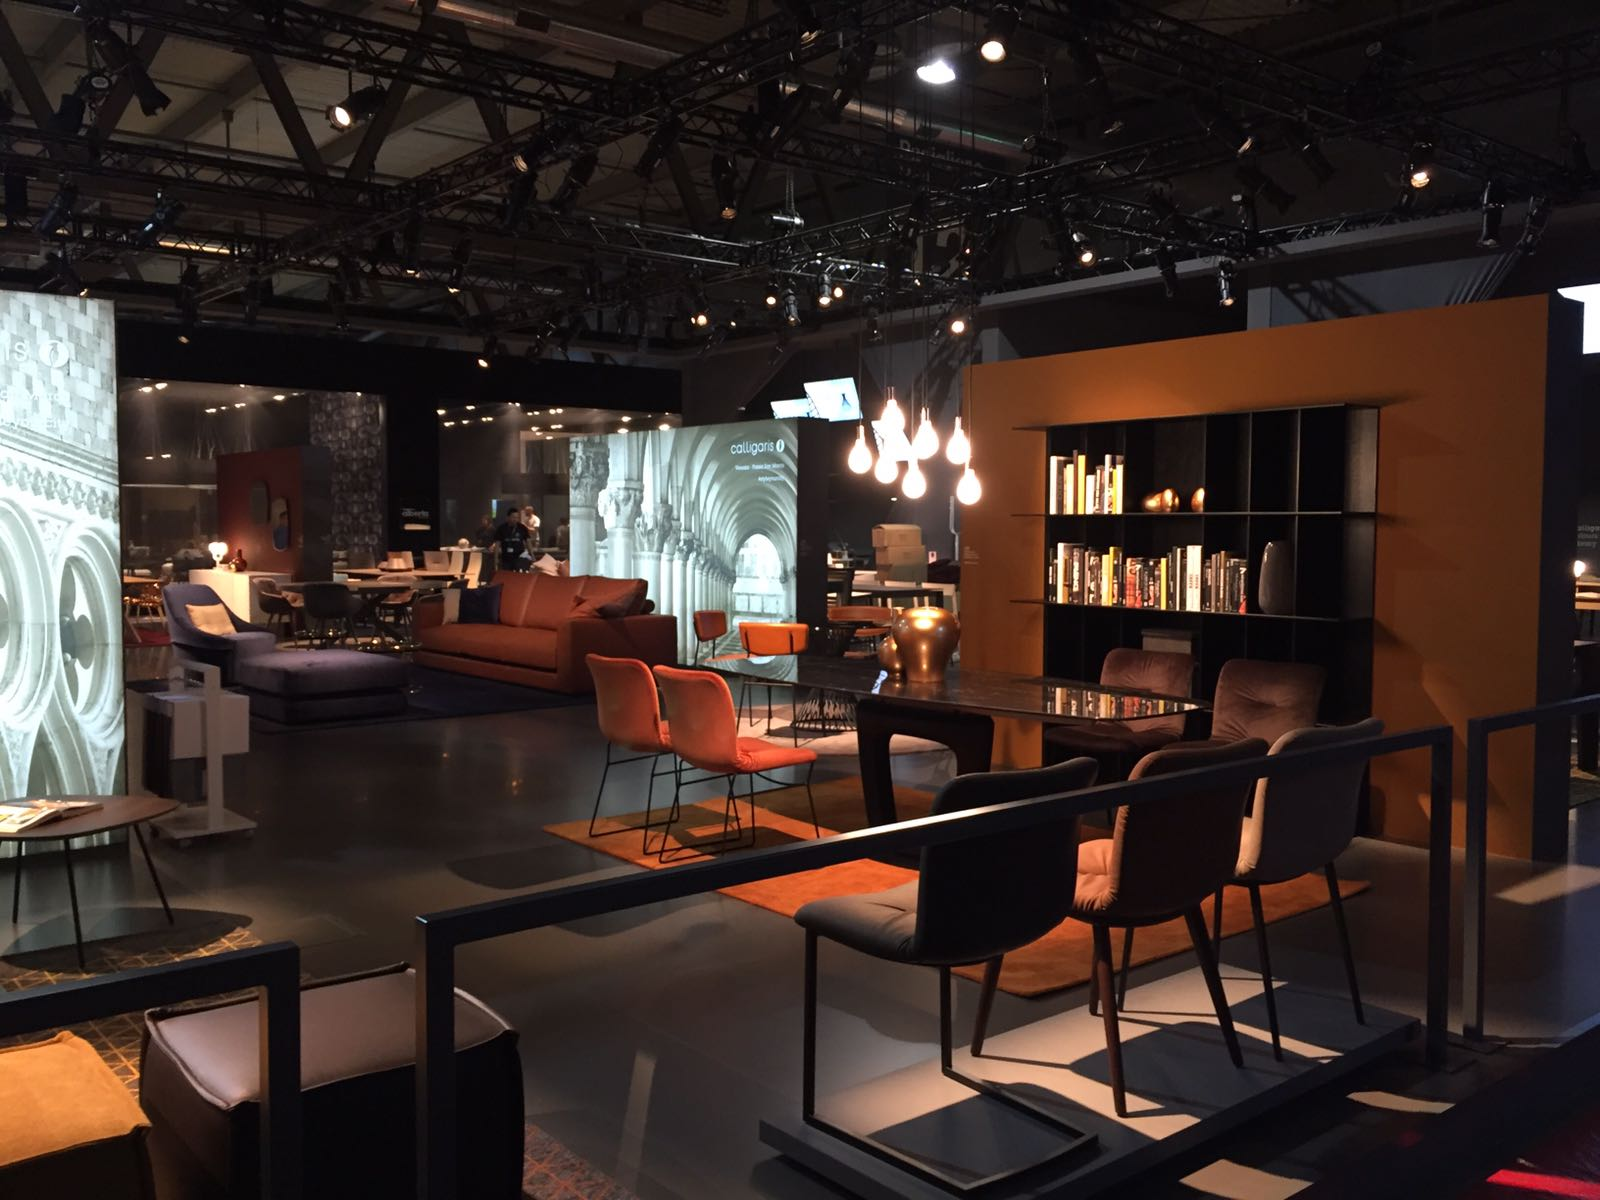 5 Color Trends Spotted at ISaloni 2017 salone del mobile 2017 5 Color Trends Spotted at Salone del Mobile 2017 5 Color Trends Spotted at Salone del Mobile 2017 17